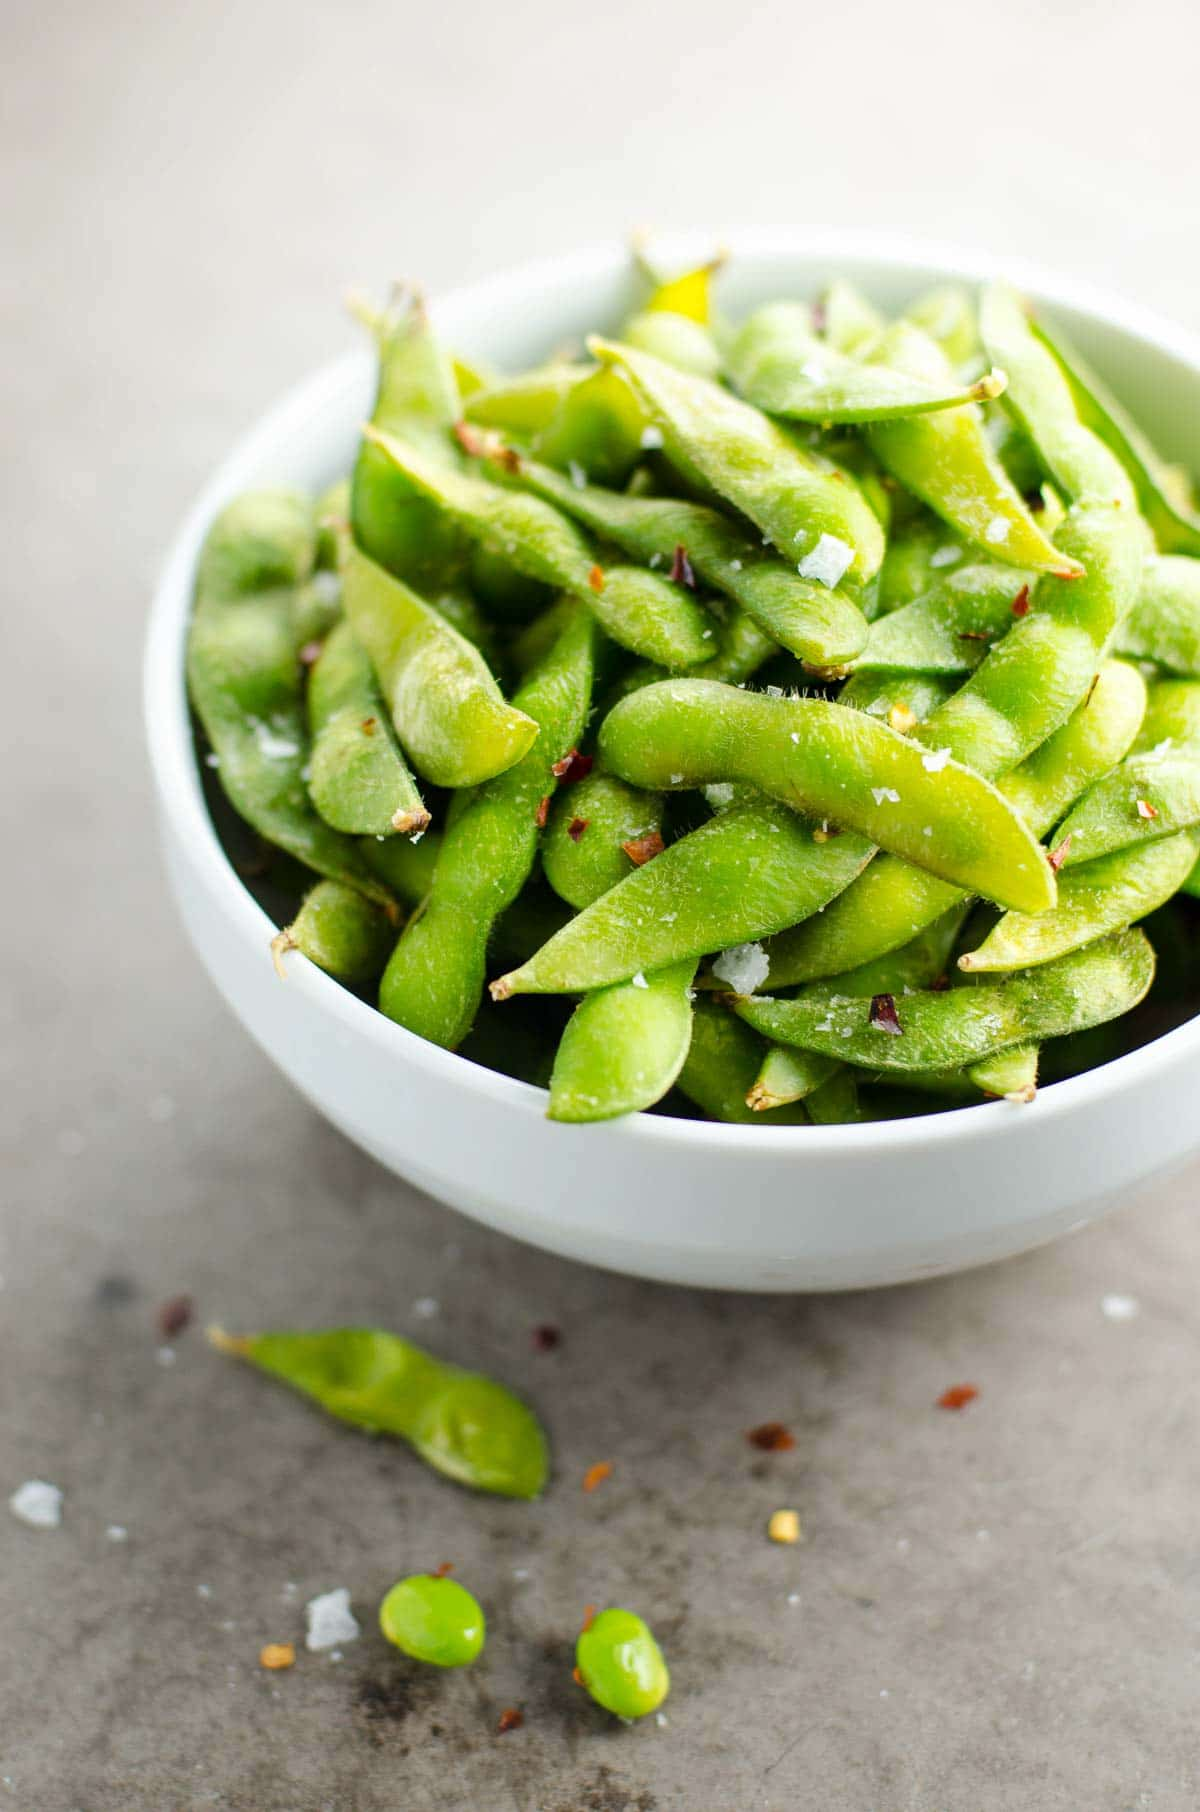 Wagamama-style chili salted edamame in a white bowl